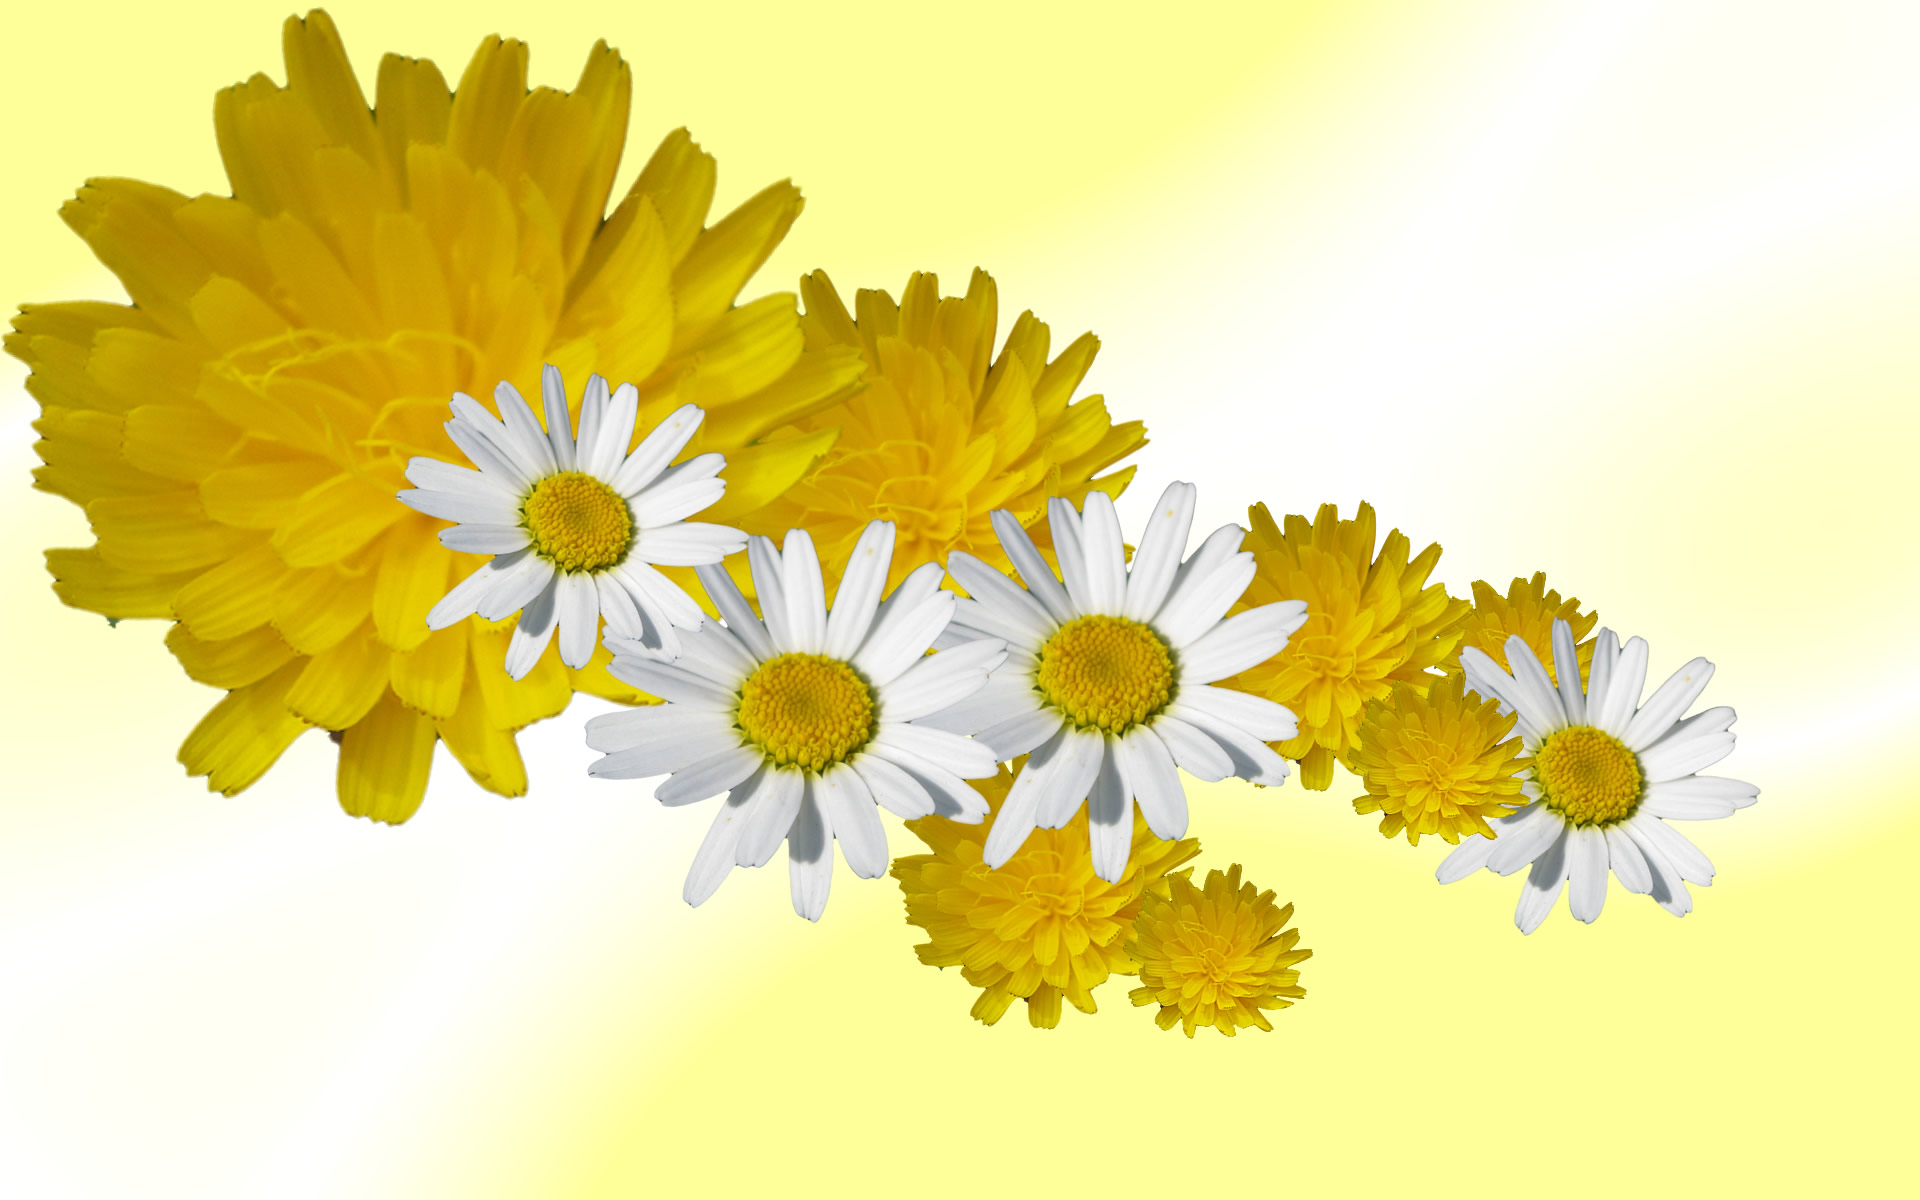 Daisy and dandelion wallpaper